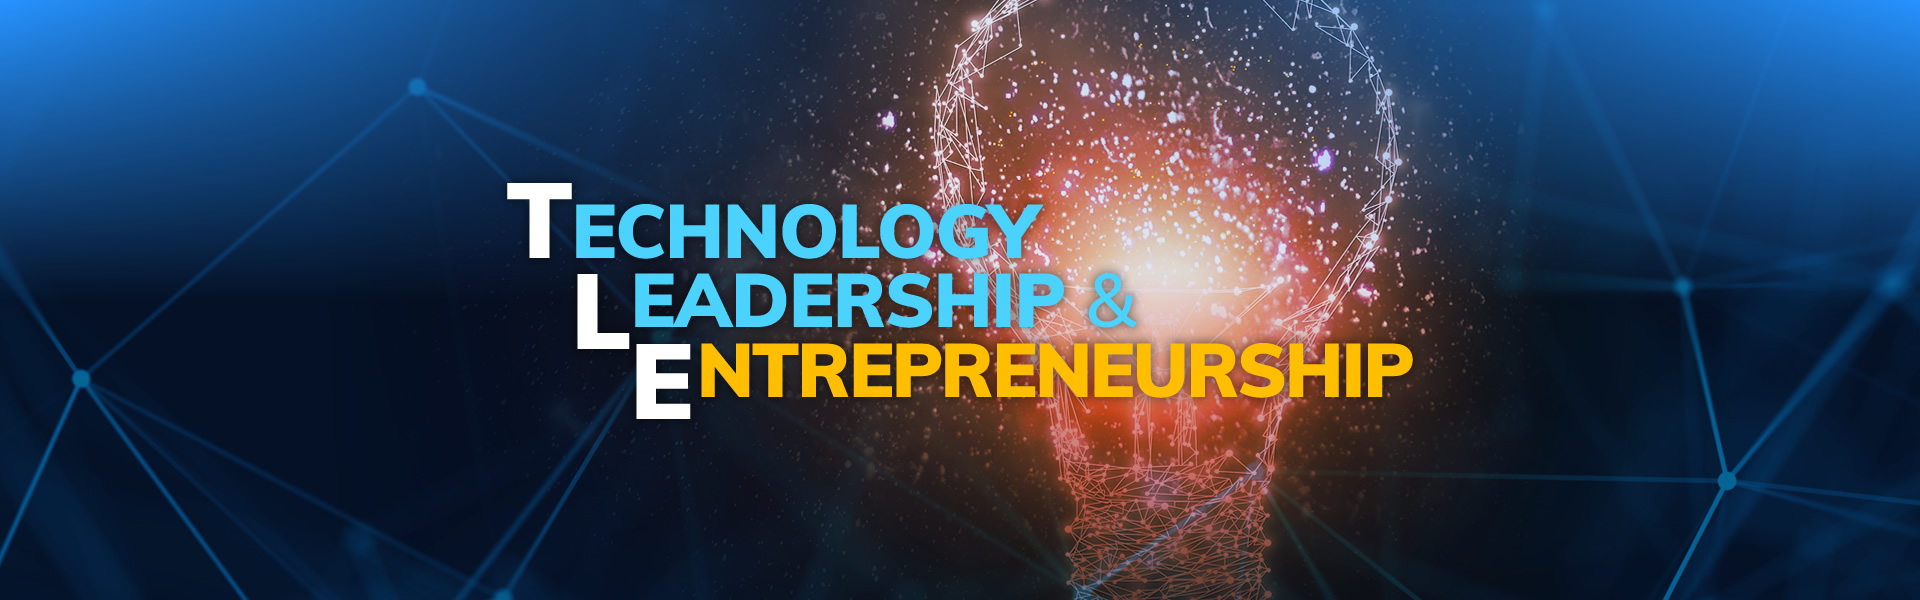 Technology Leadership and Entrepreneurship